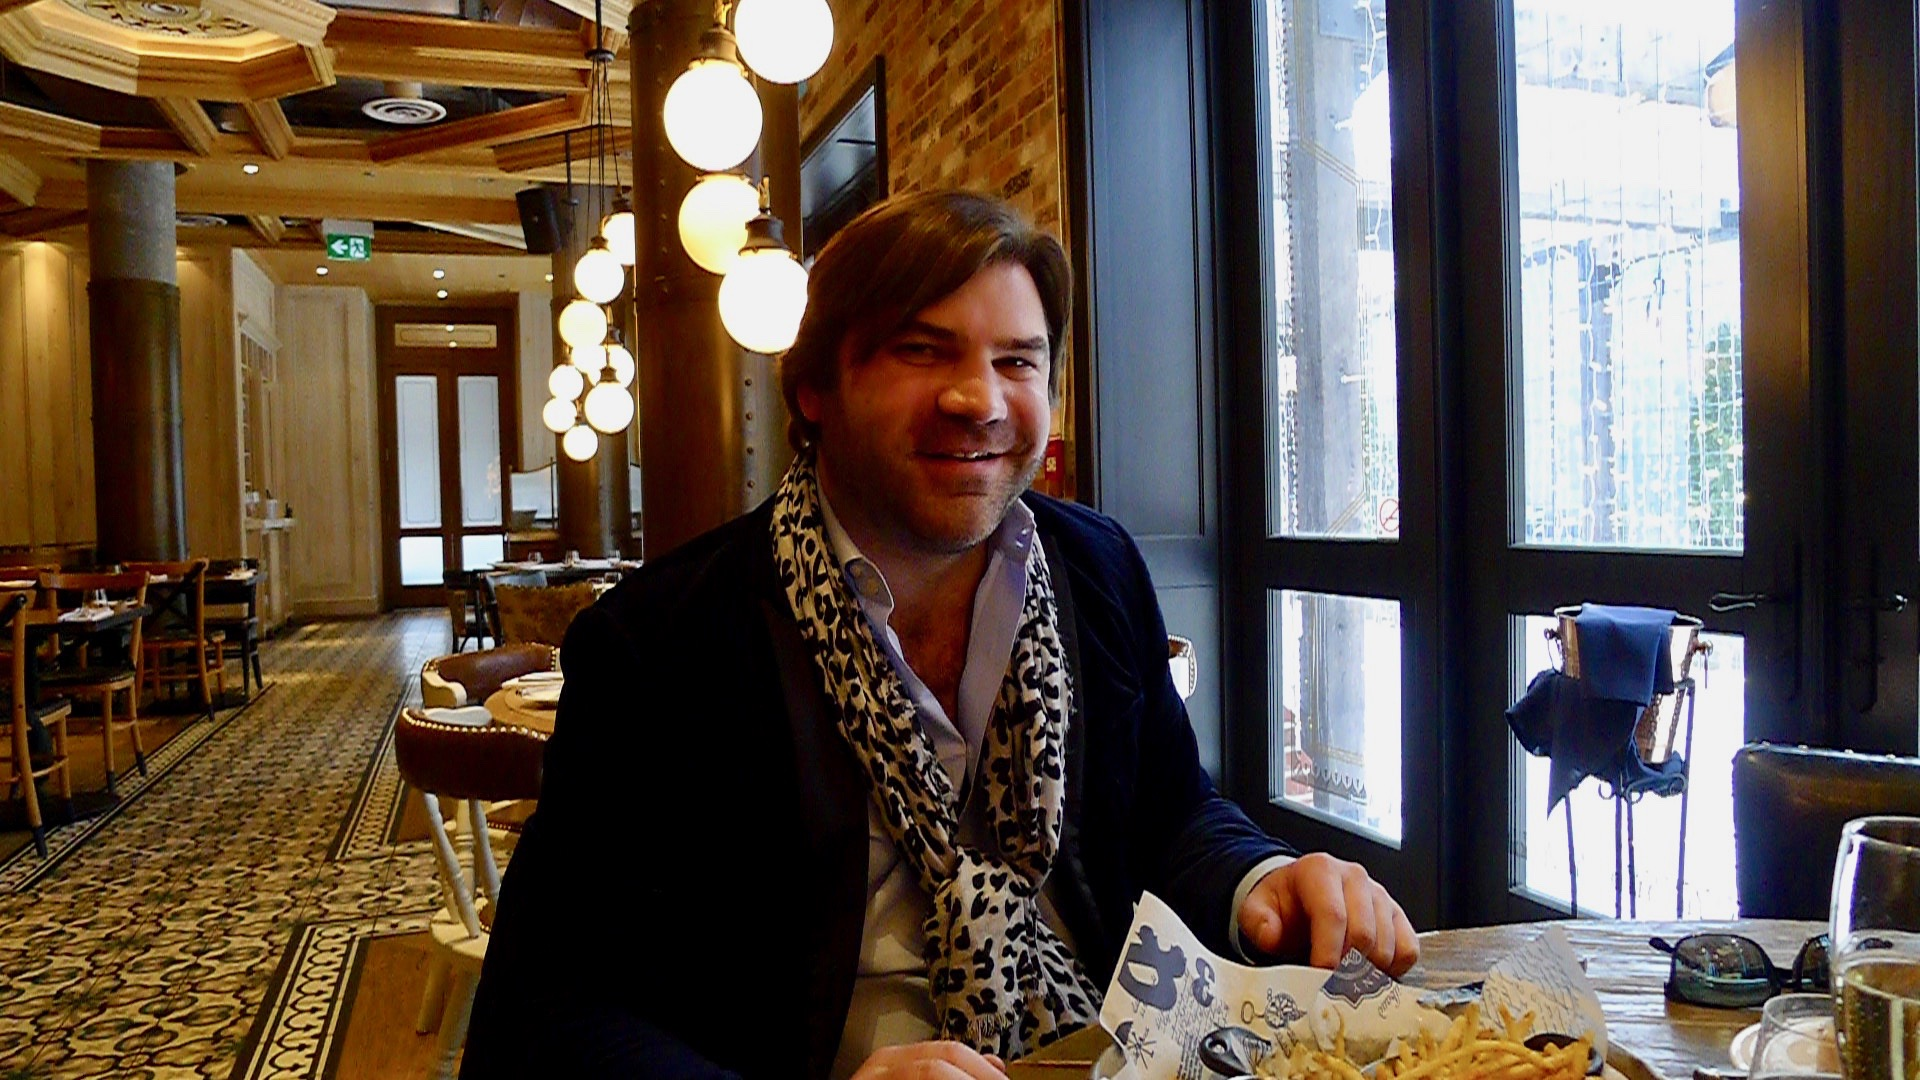 Lunch at Toronto's Cluny Bistro with the charmingly effusive Jean-Remy Rapeneau.